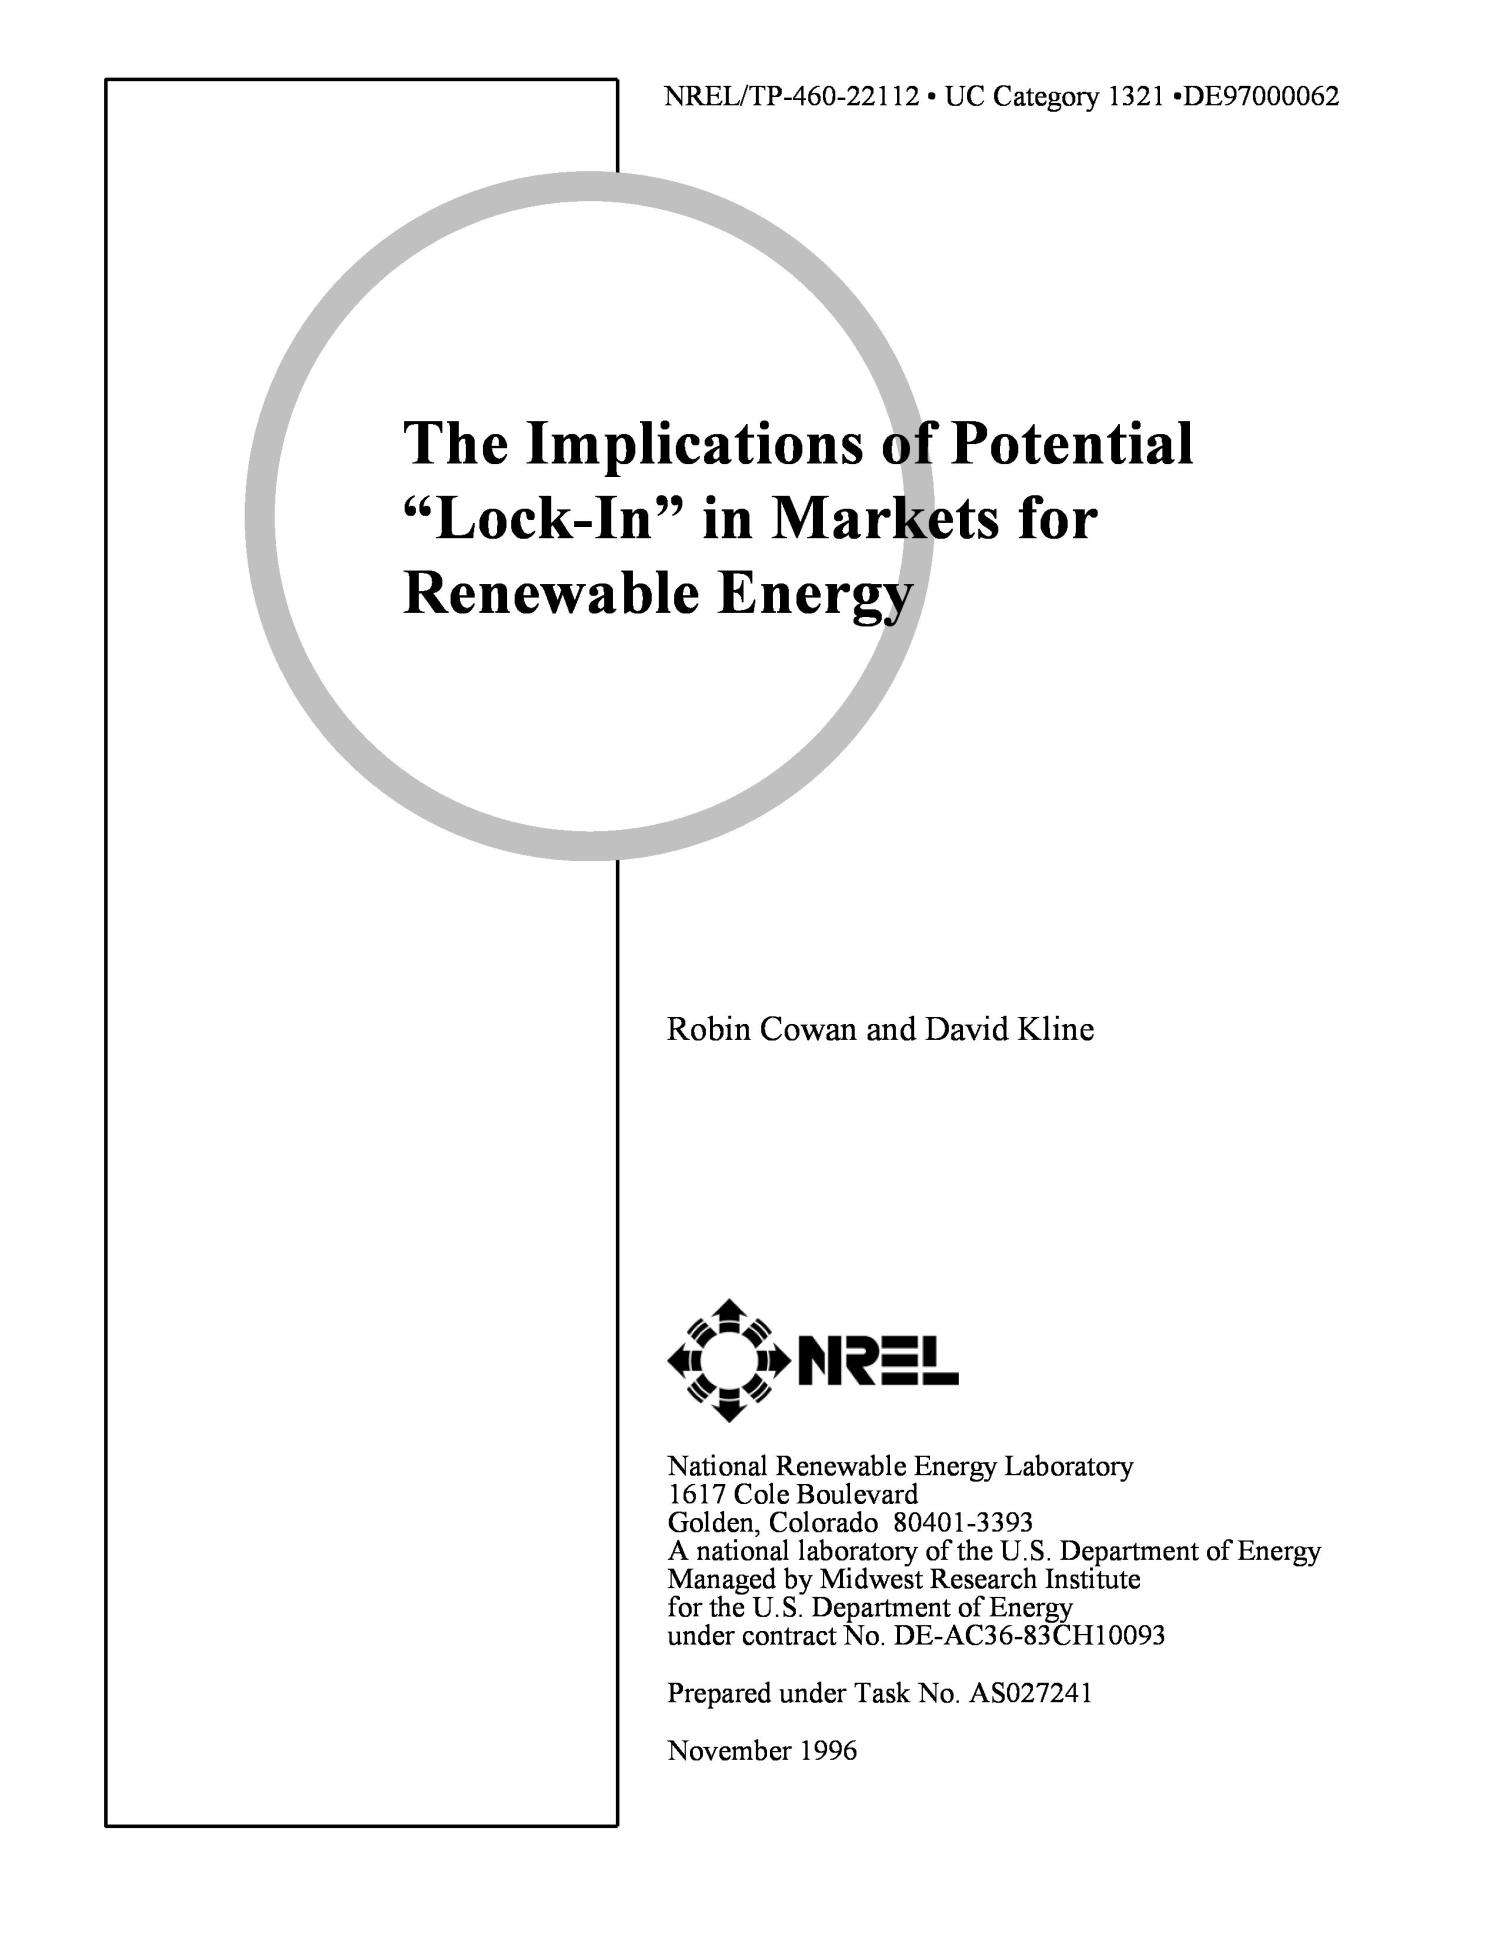 The implications of potential `lock-in` markets for renewable energy                                                                                                      [Sequence #]: 2 of 27